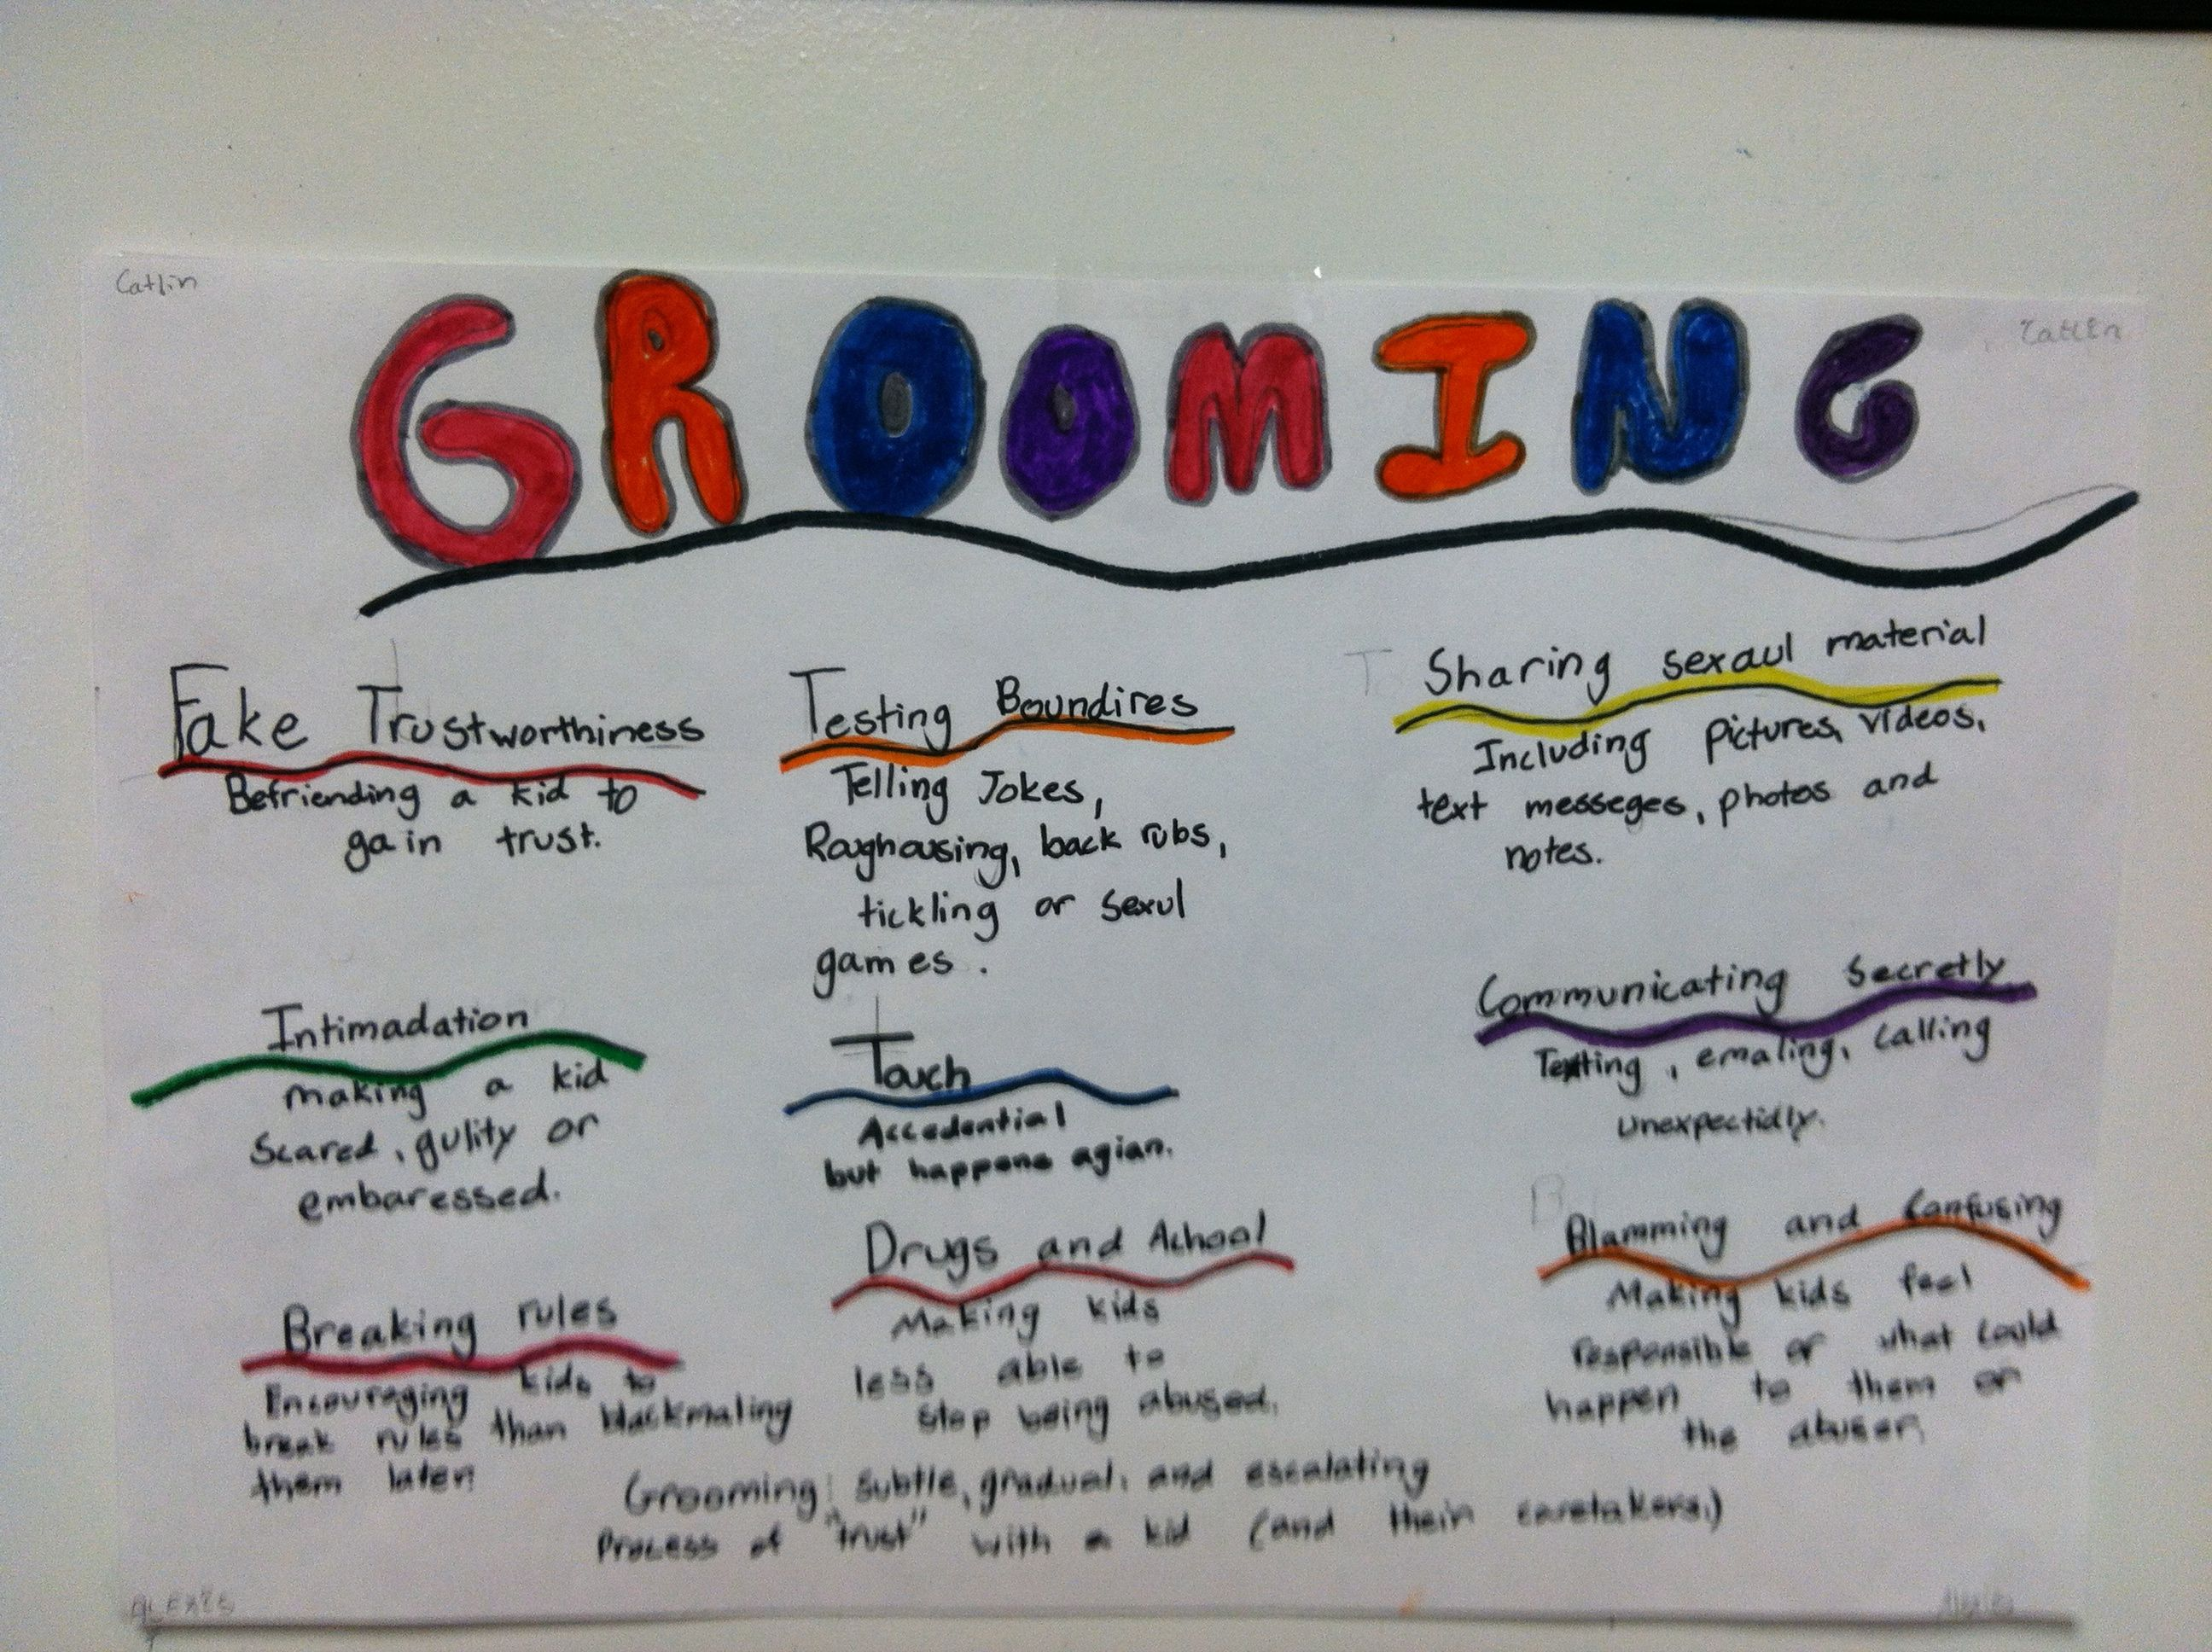 Sexual Abuse Prevention Lessons And Resources For Teaching Kids About  Grooming